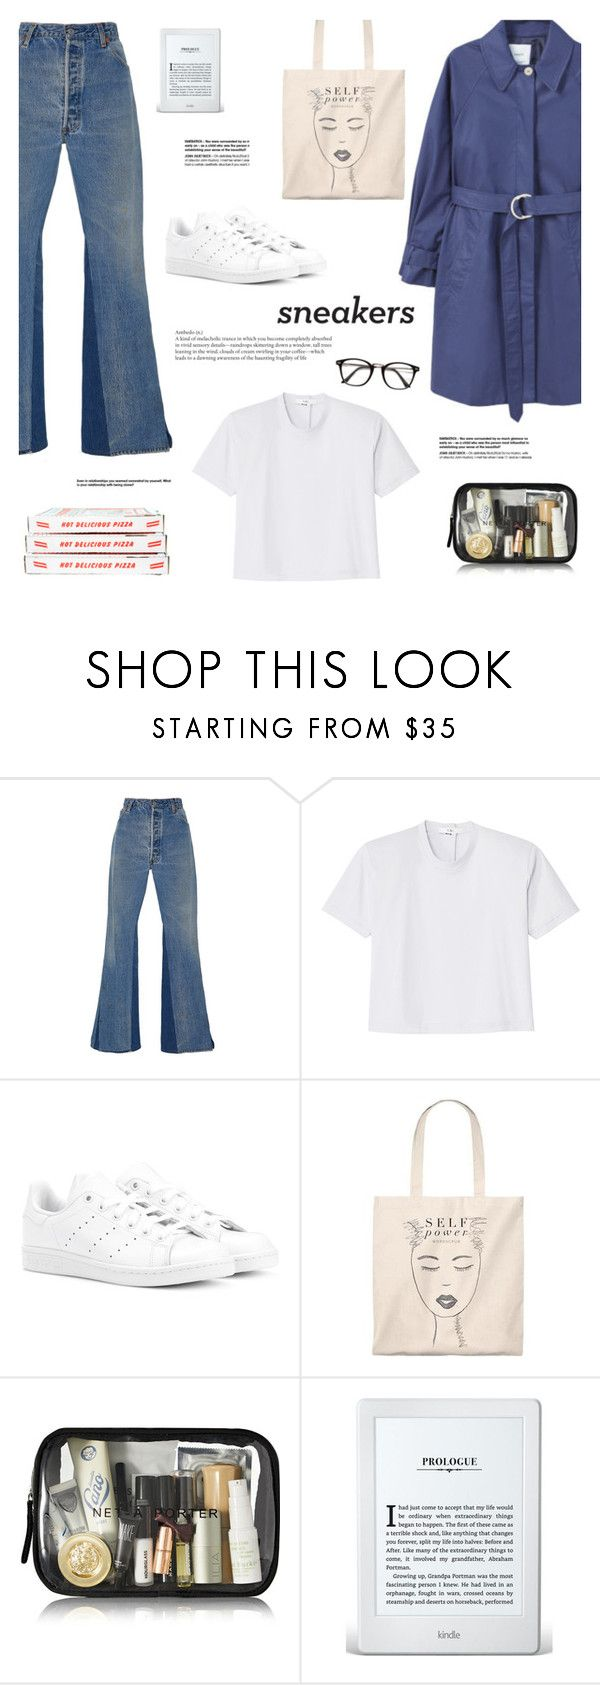 """""""Jueves por la Noche"""" by makeupgoddess ❤ liked on Polyvore featuring RE/DONE, TIBI and adidas Originals"""